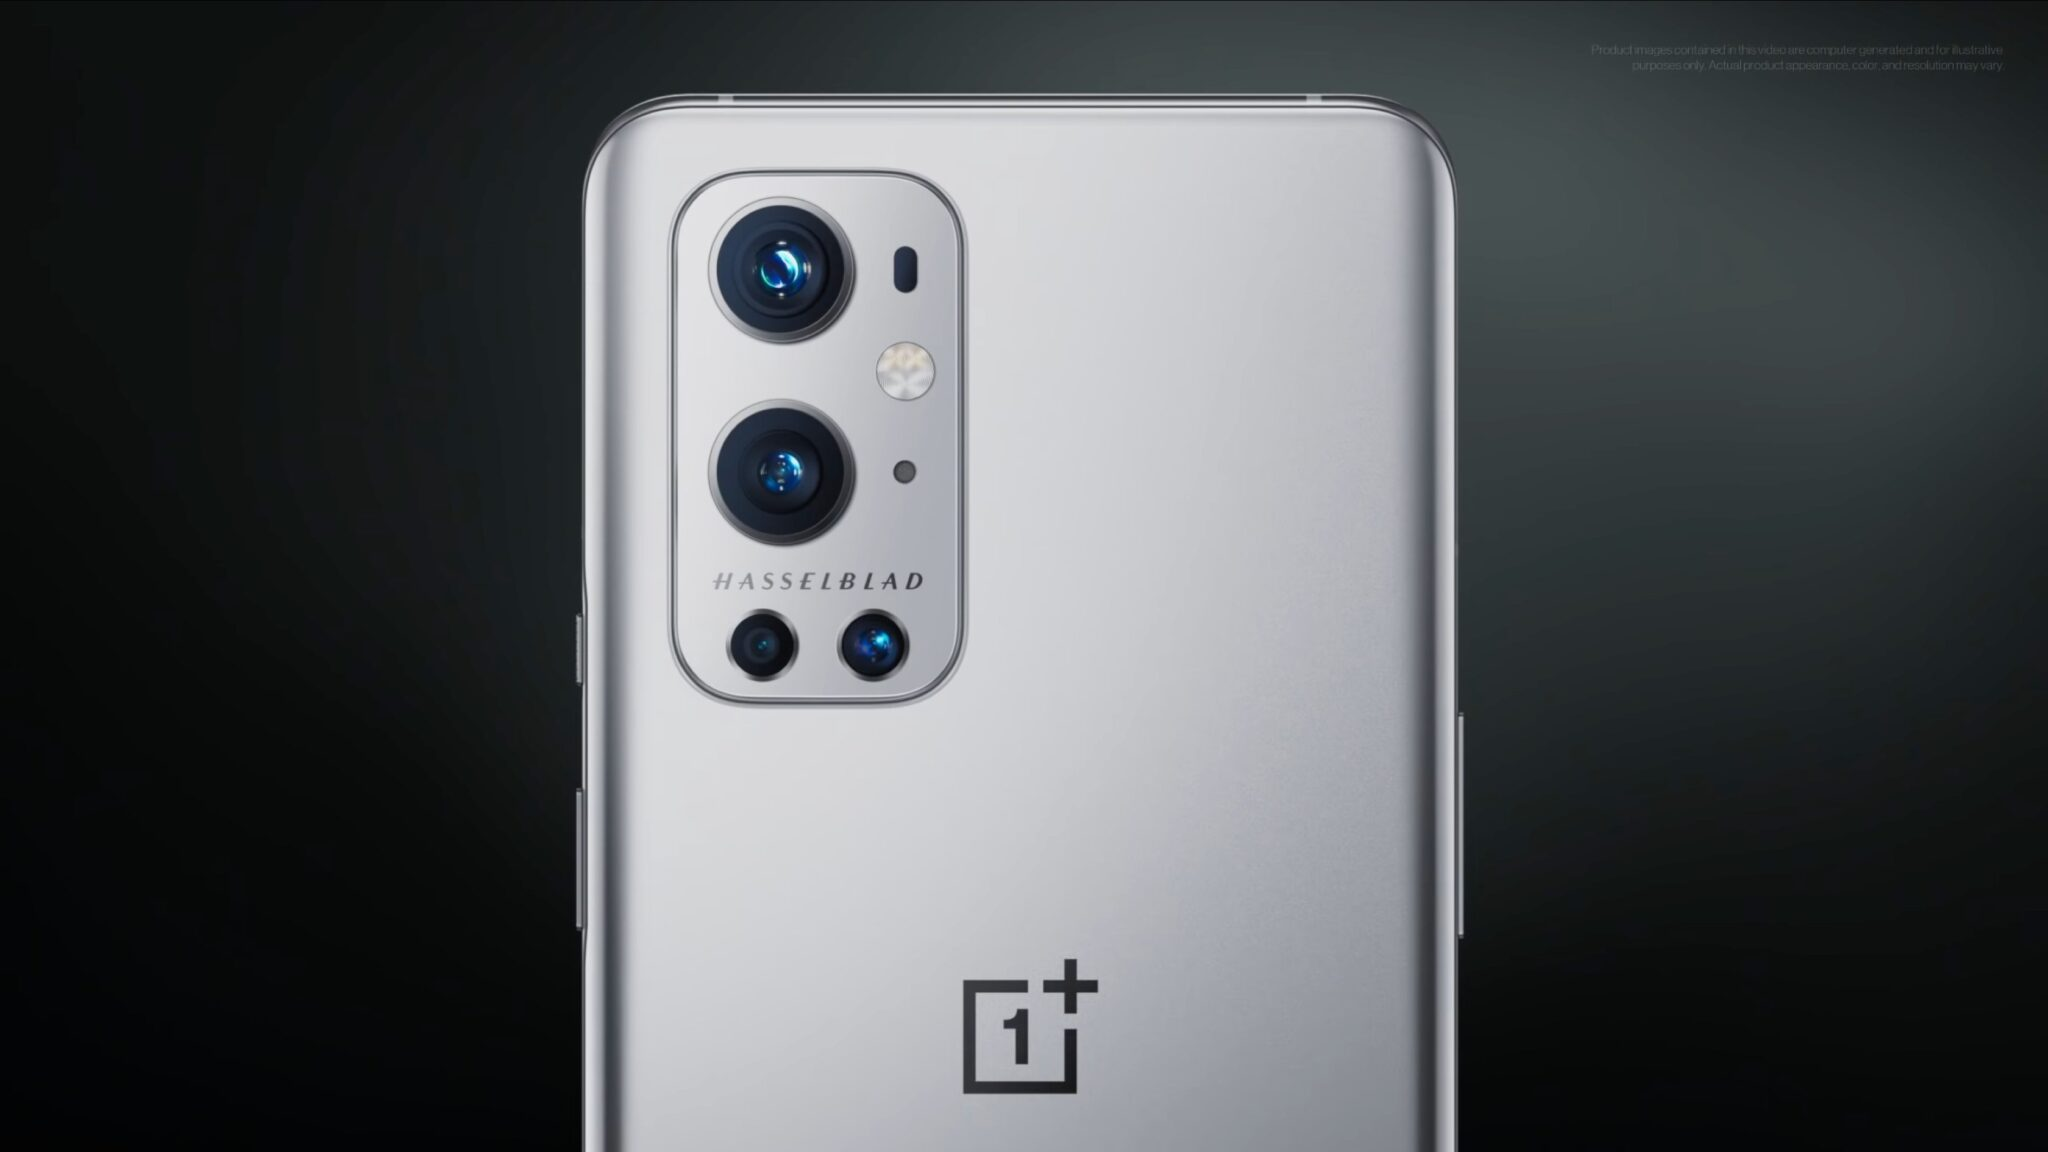 OnePlus 9 Shown Off in the Official Camera Teaser